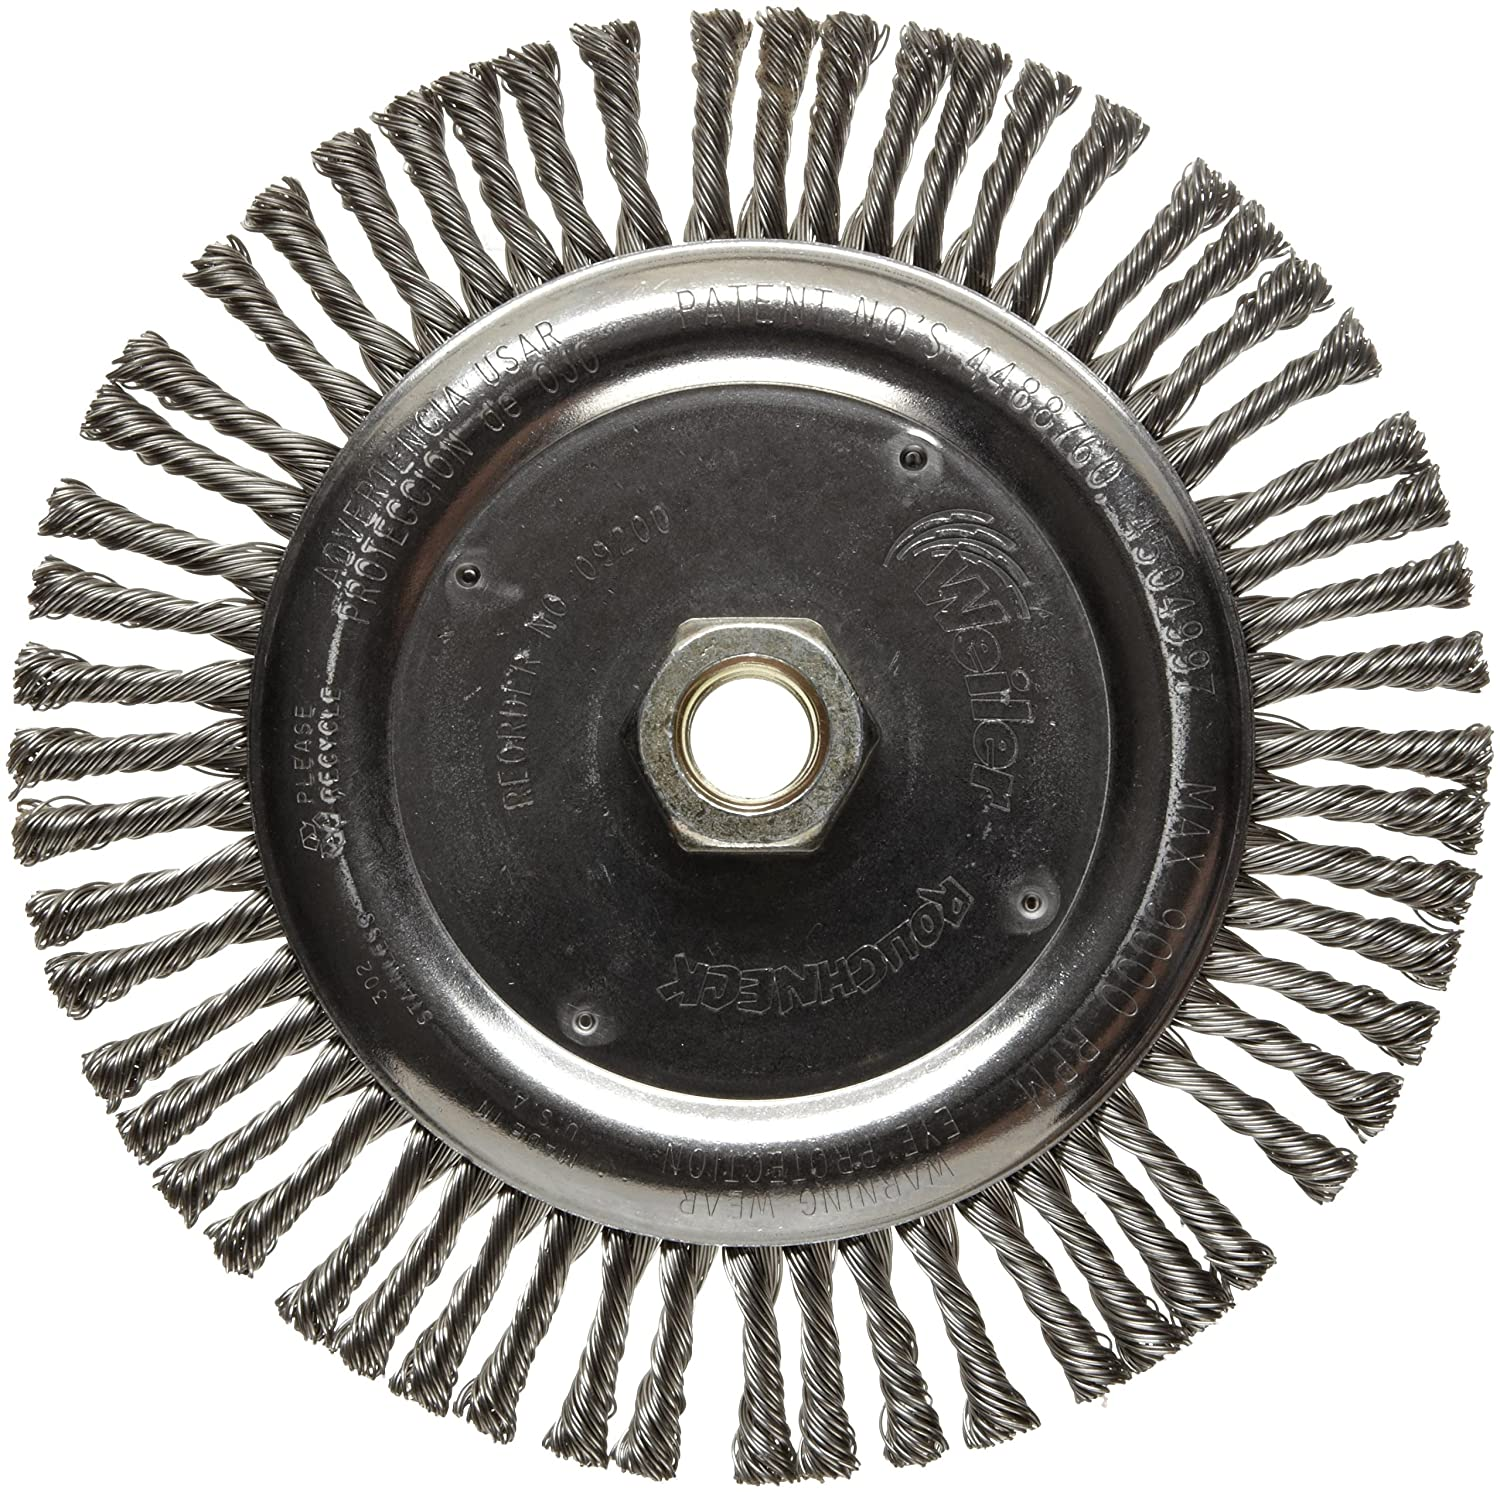 Weiler Dualife Narrow Face Wire Wheel Brush, Threaded Hole, Stainless Steel 302, Stringer Knotted, 6-7/8' Diameter, 0.020' Wire Diameter, 5/8-11' Arbor, 1-1/8' Bristle Length, 3/16' Brush Face Width, 9000 rpm 6-7/8 Diameter 0.020 Wire Diameter 09200